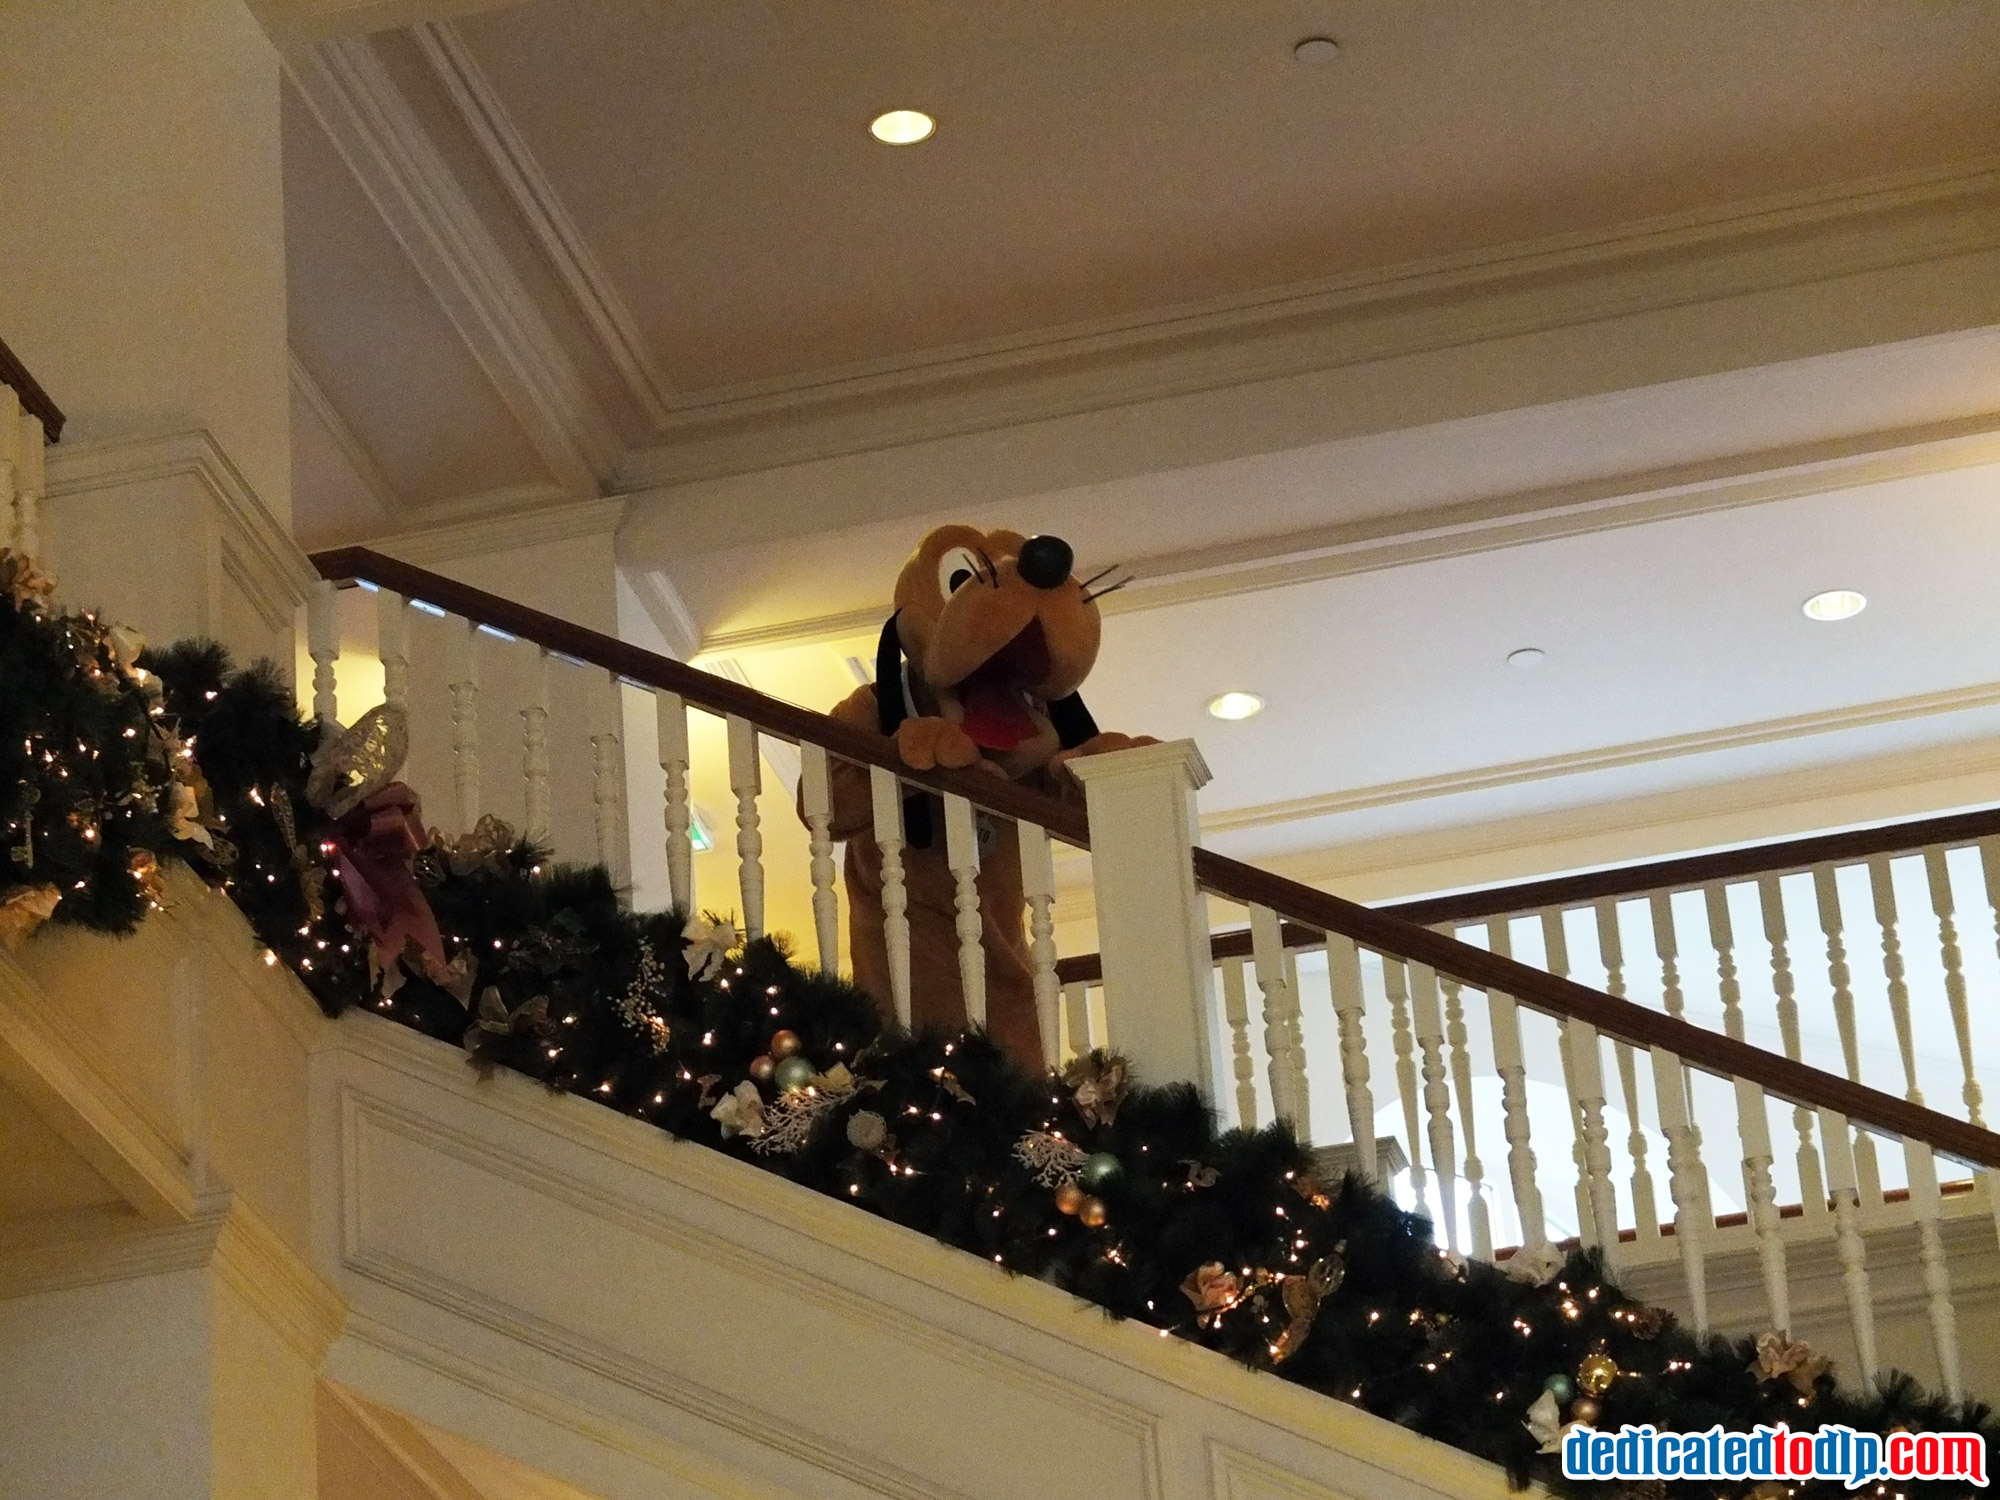 Captivating The Decent Of The Stairs In Disneyland Hotel, Disneyland Paris